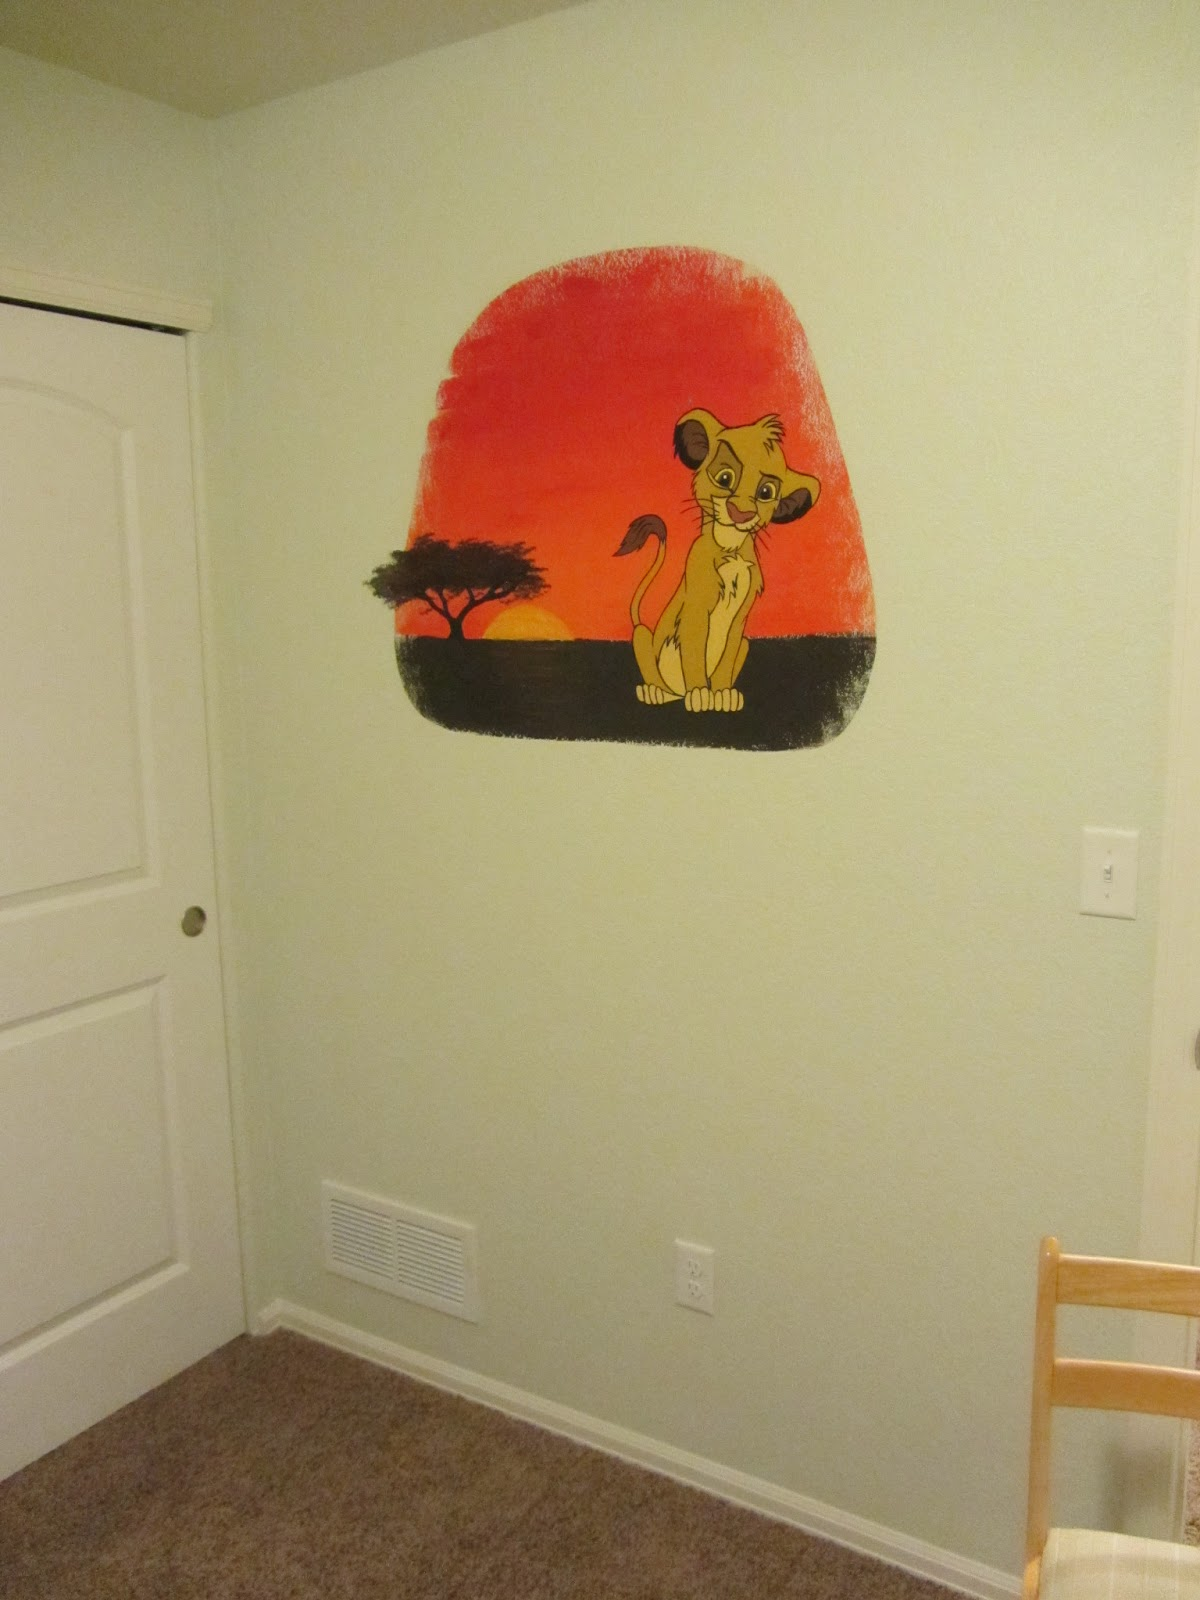 Love Like Enamel: How to Paint a Wall Mural